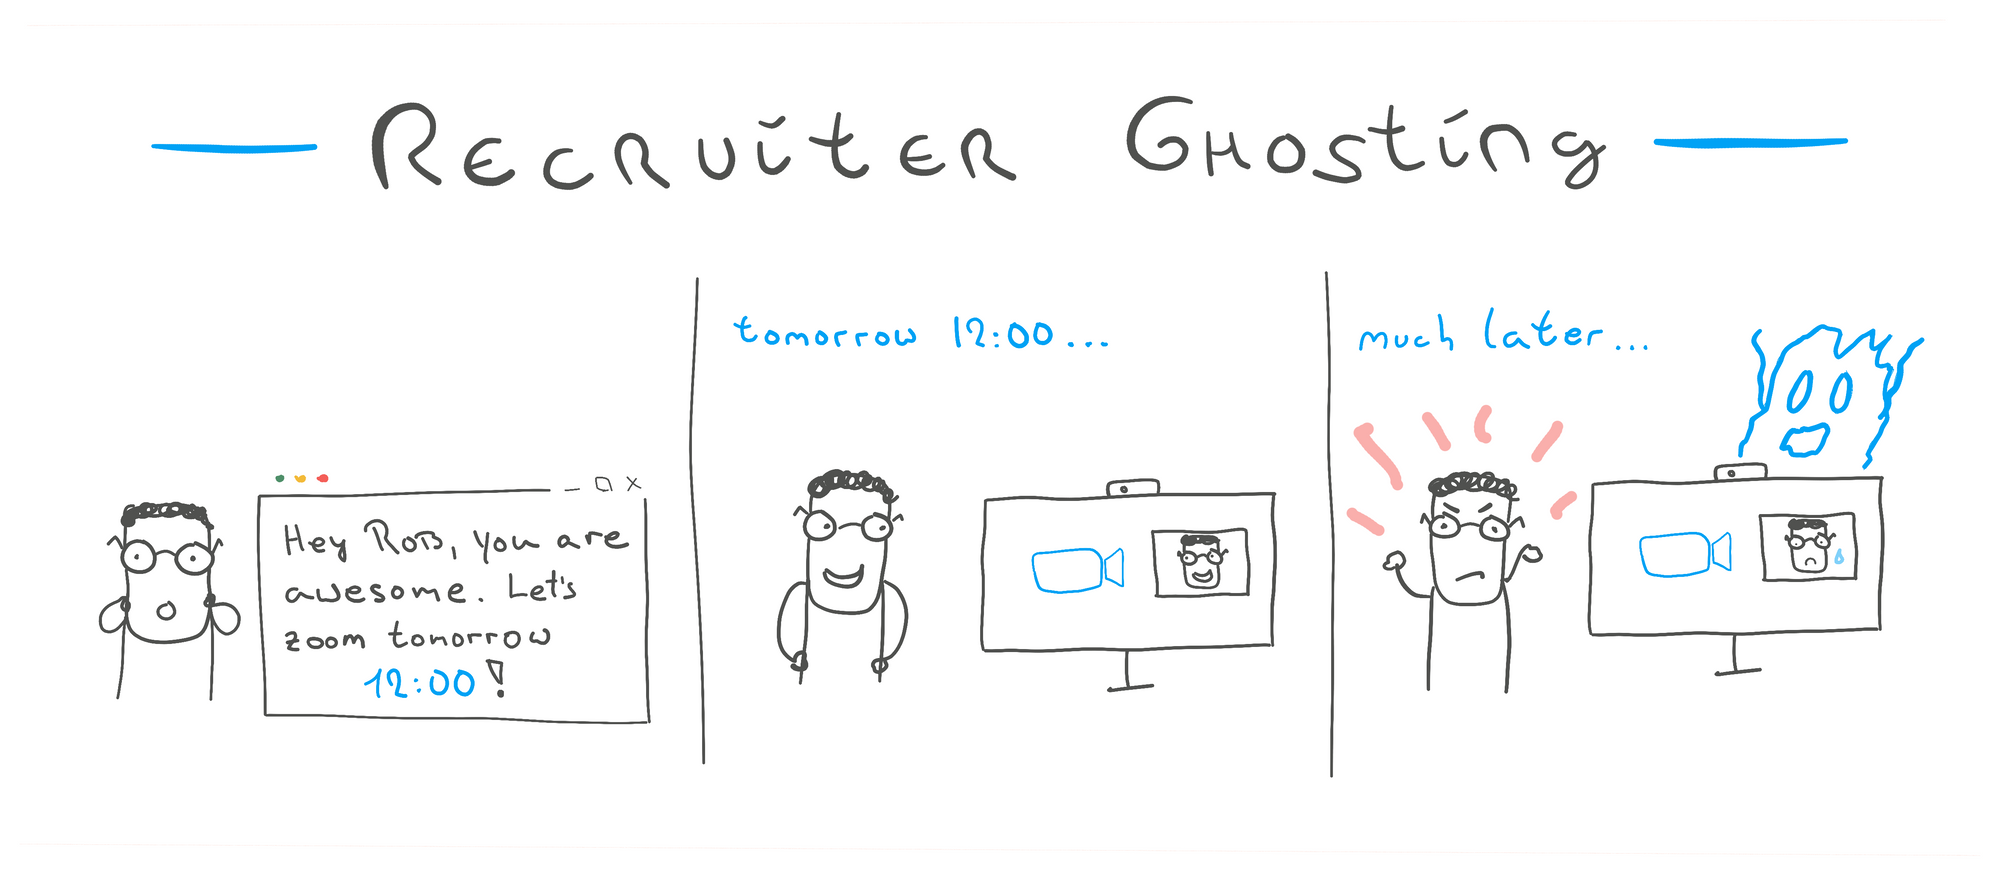 How to deal with recruiter ghosting as a developer